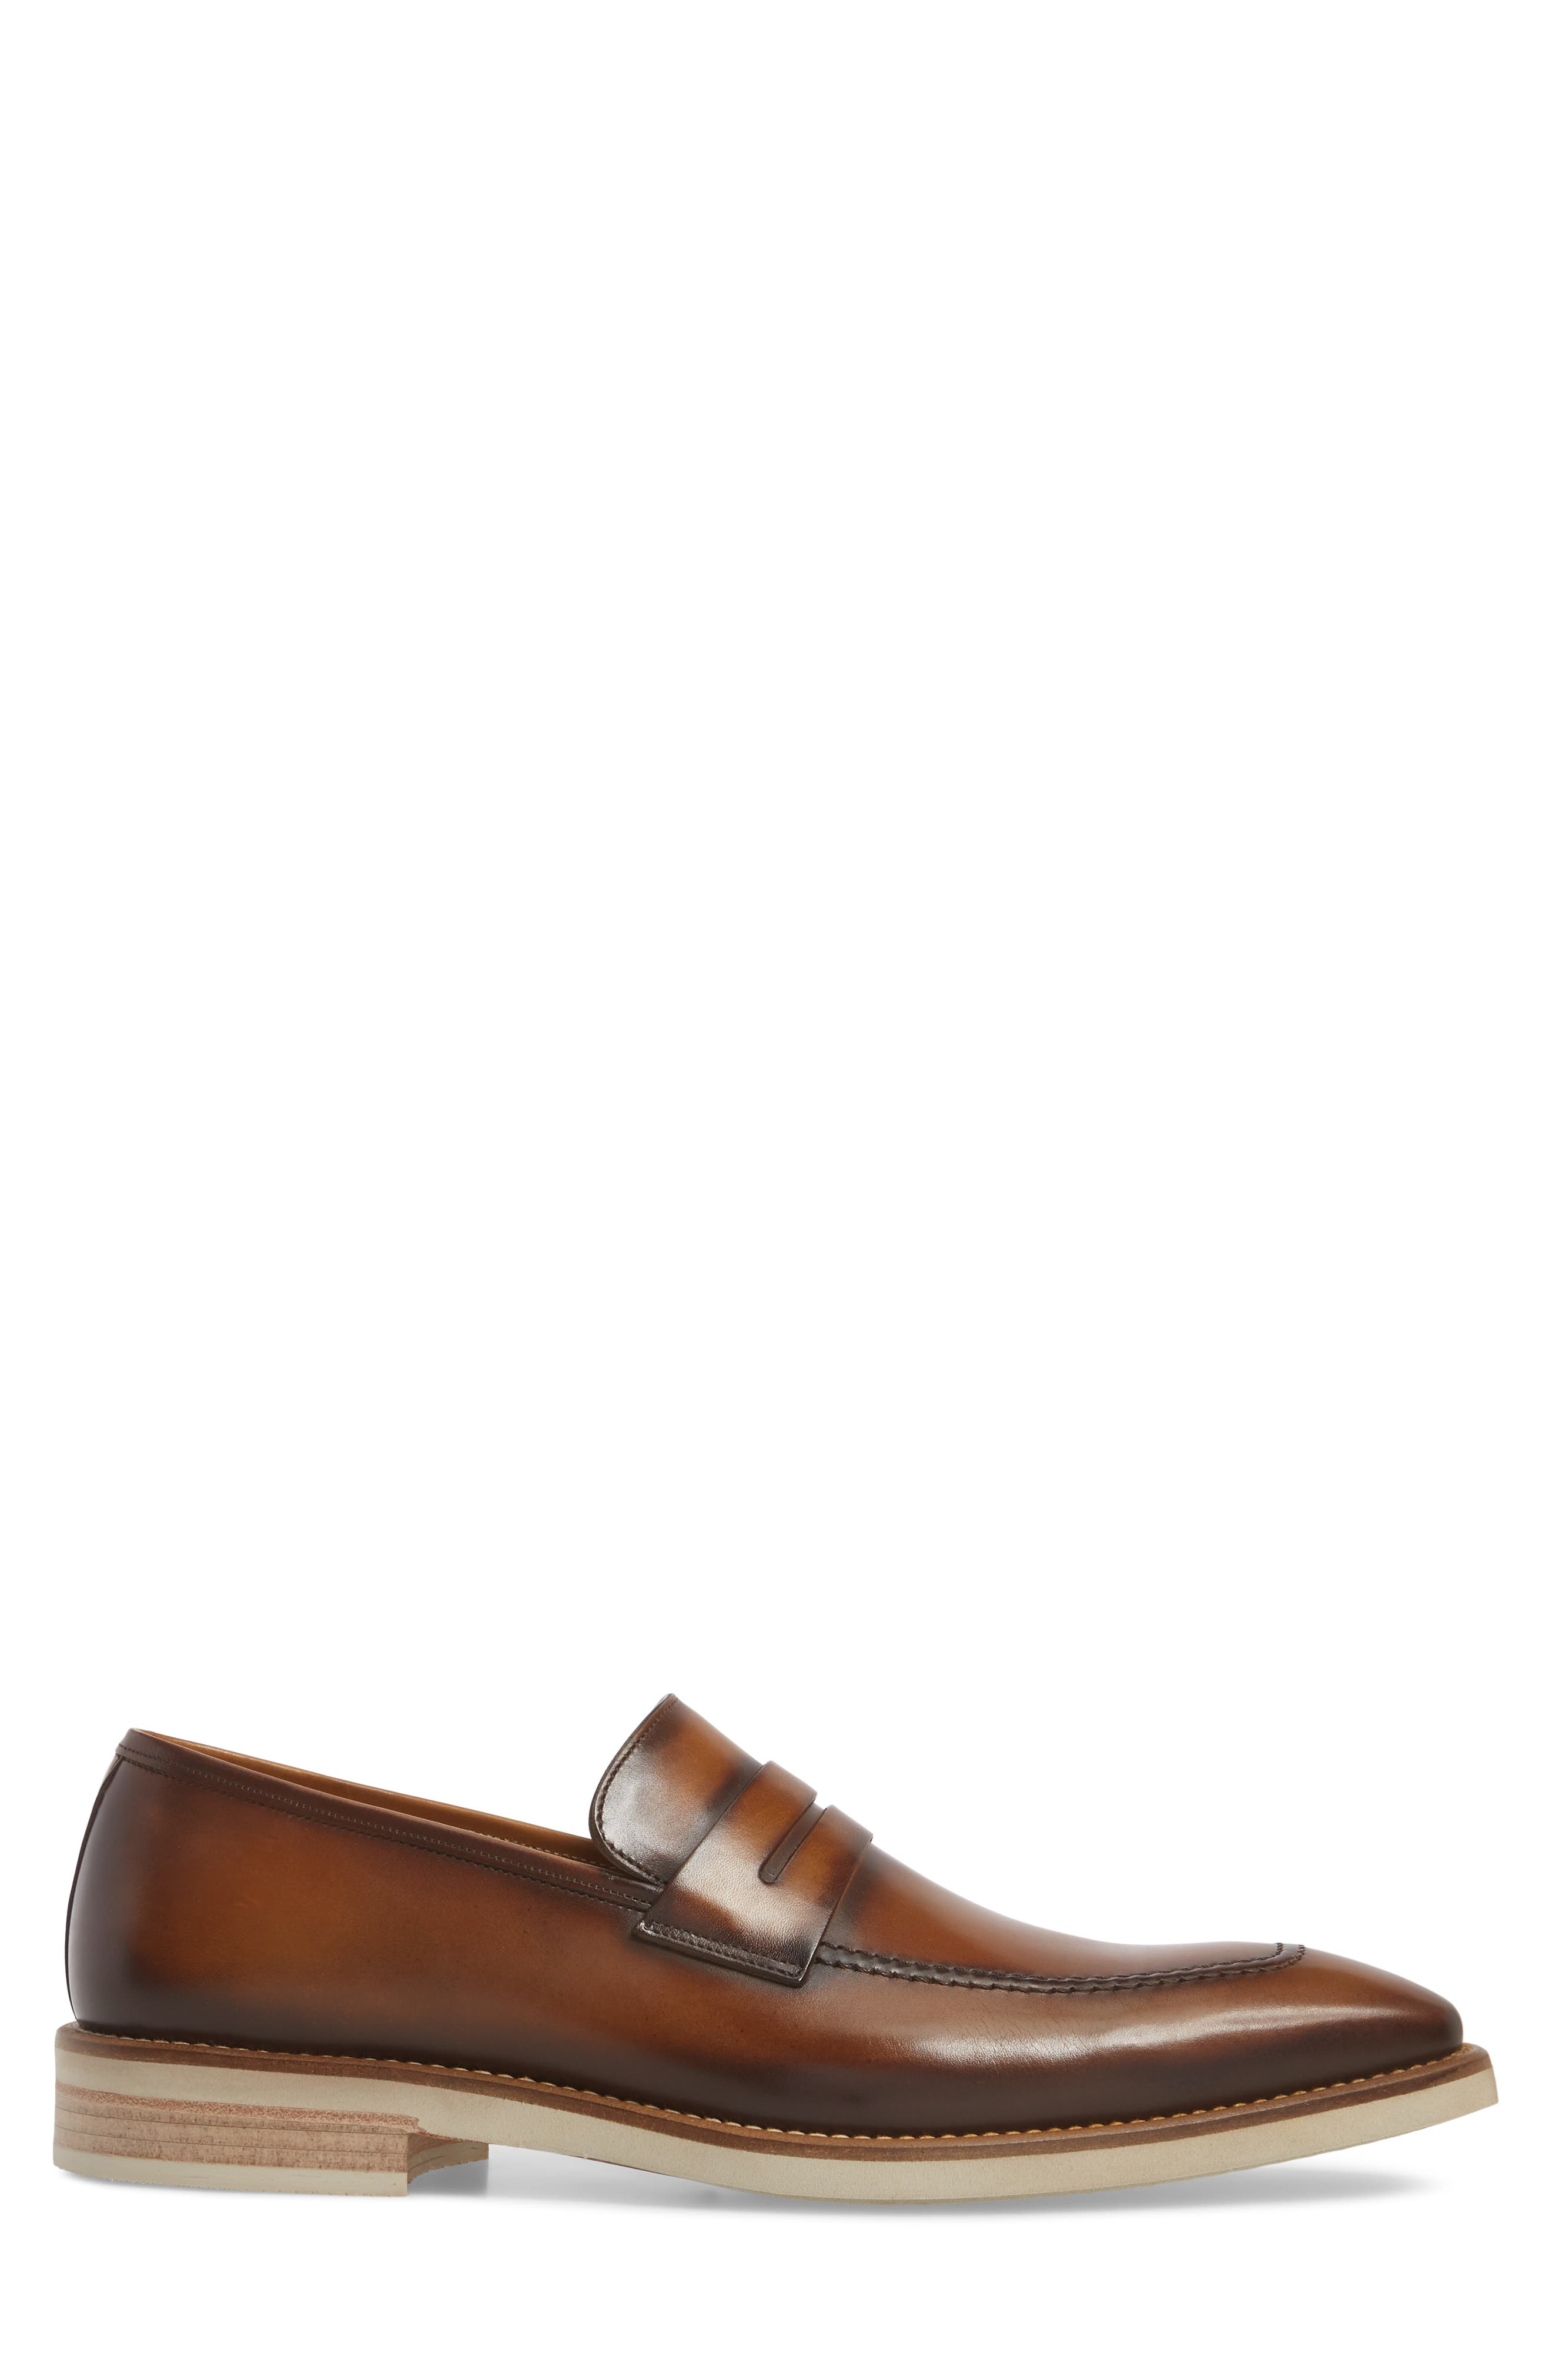 Castor Apron Toe Penny Loafer,                             Alternate thumbnail 3, color,                             Honey Leather